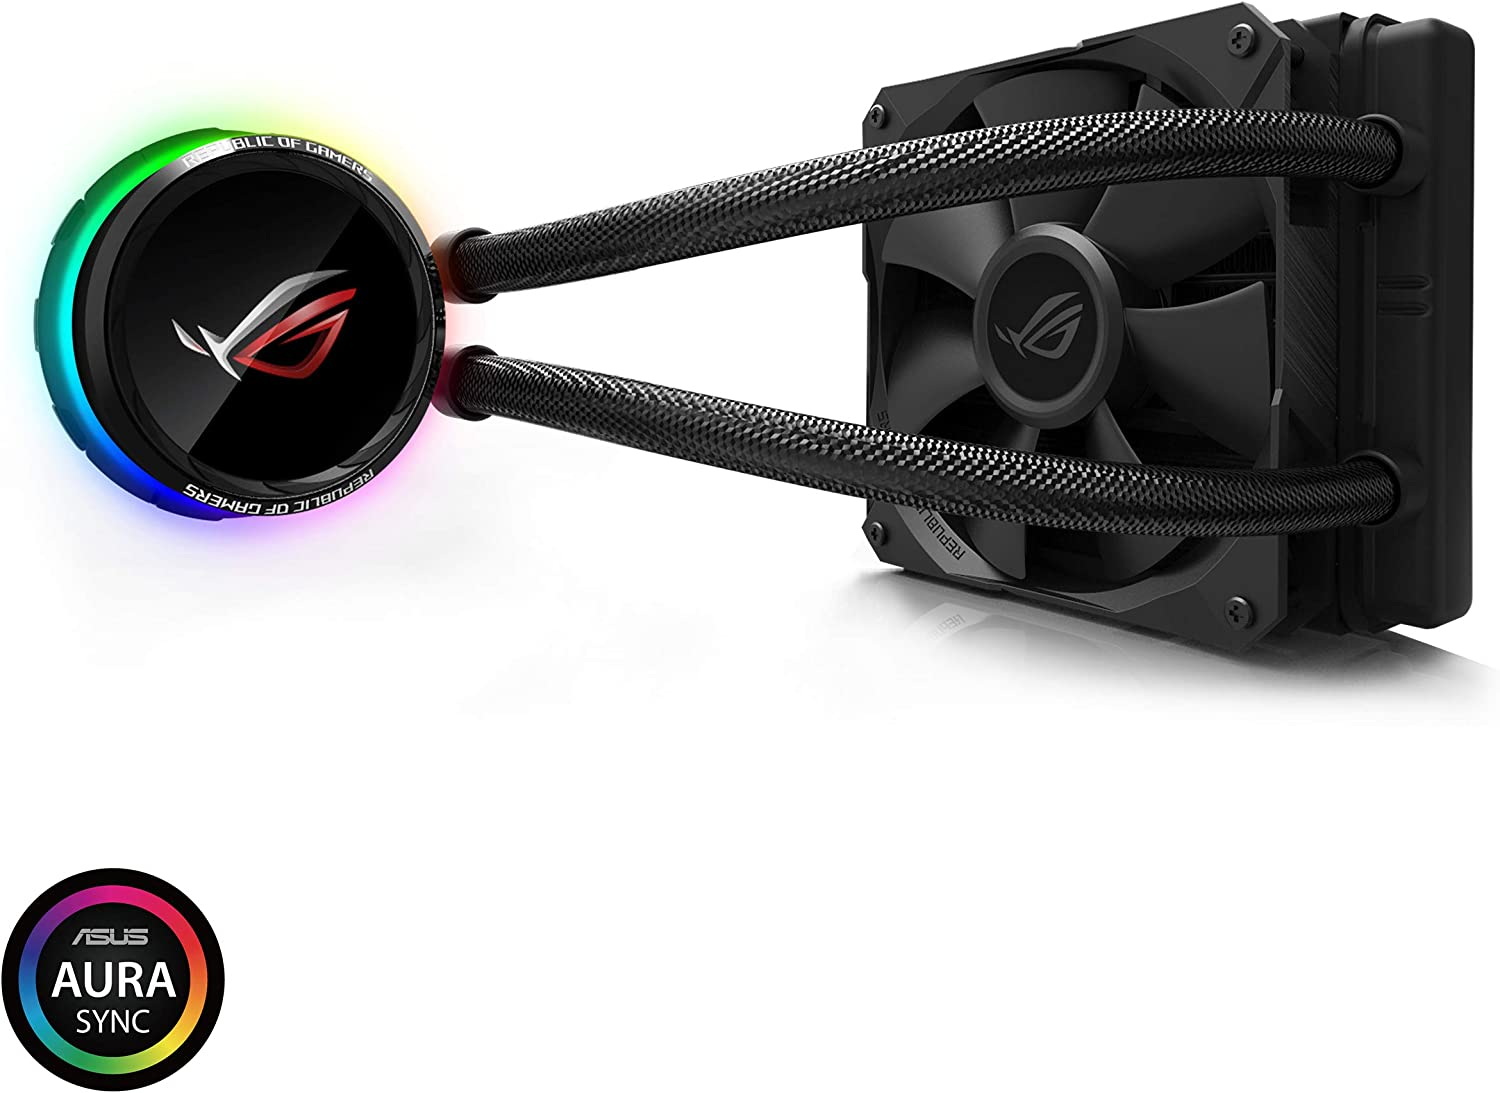 Asus ROG RYUO 120 RGB AIO Liquid CPU Cooler 120mm Radiator (120mm 4-Pin PWM Fan) with Livedash OLED Panel and Fanxpert CONTROLS